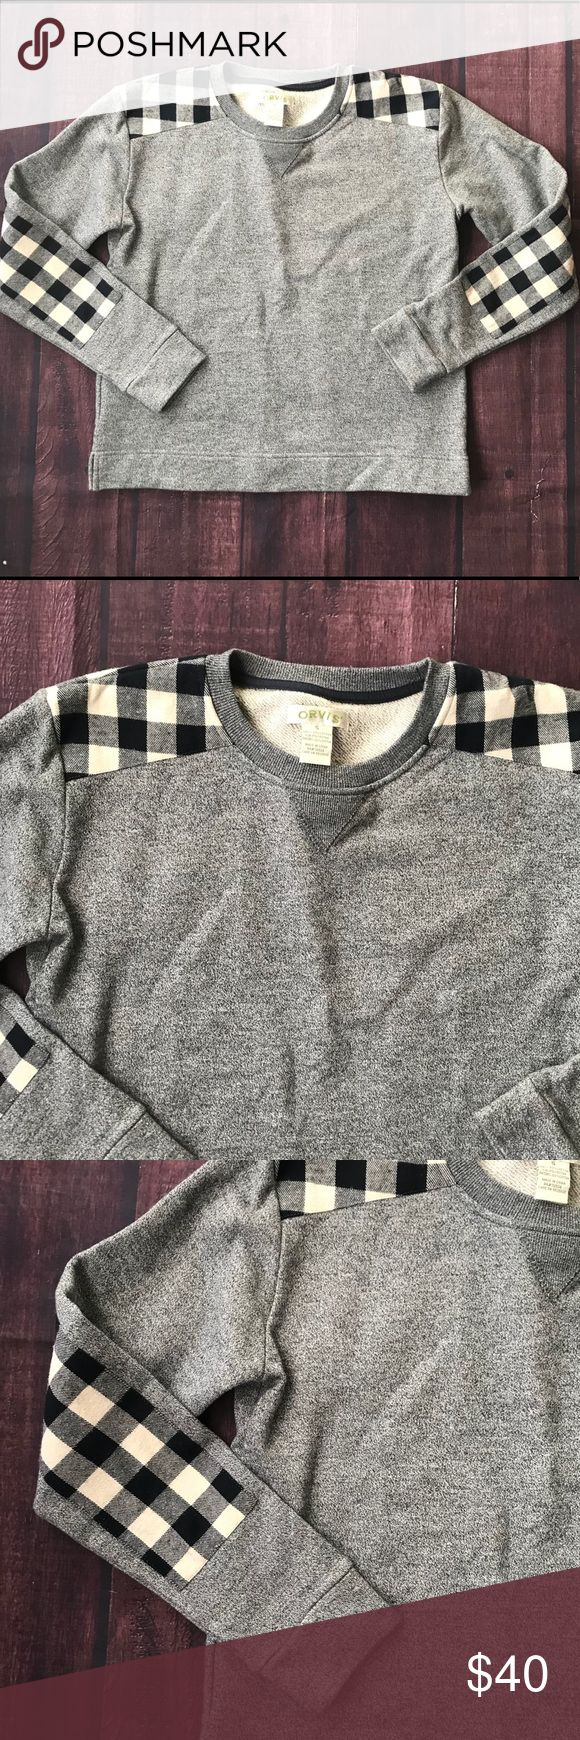 Orvis Plaid Elbow Patch Pullover Sweater Small Cutest little plaid elbow patch sweater or pullover. Cotton and polyester.  Excellent condition from a smoke free home.  Shoulders about 16 Bust about 21 Sleeve about 22 Length about 22.5 Orvis Sweaters Crew & Scoop Necks